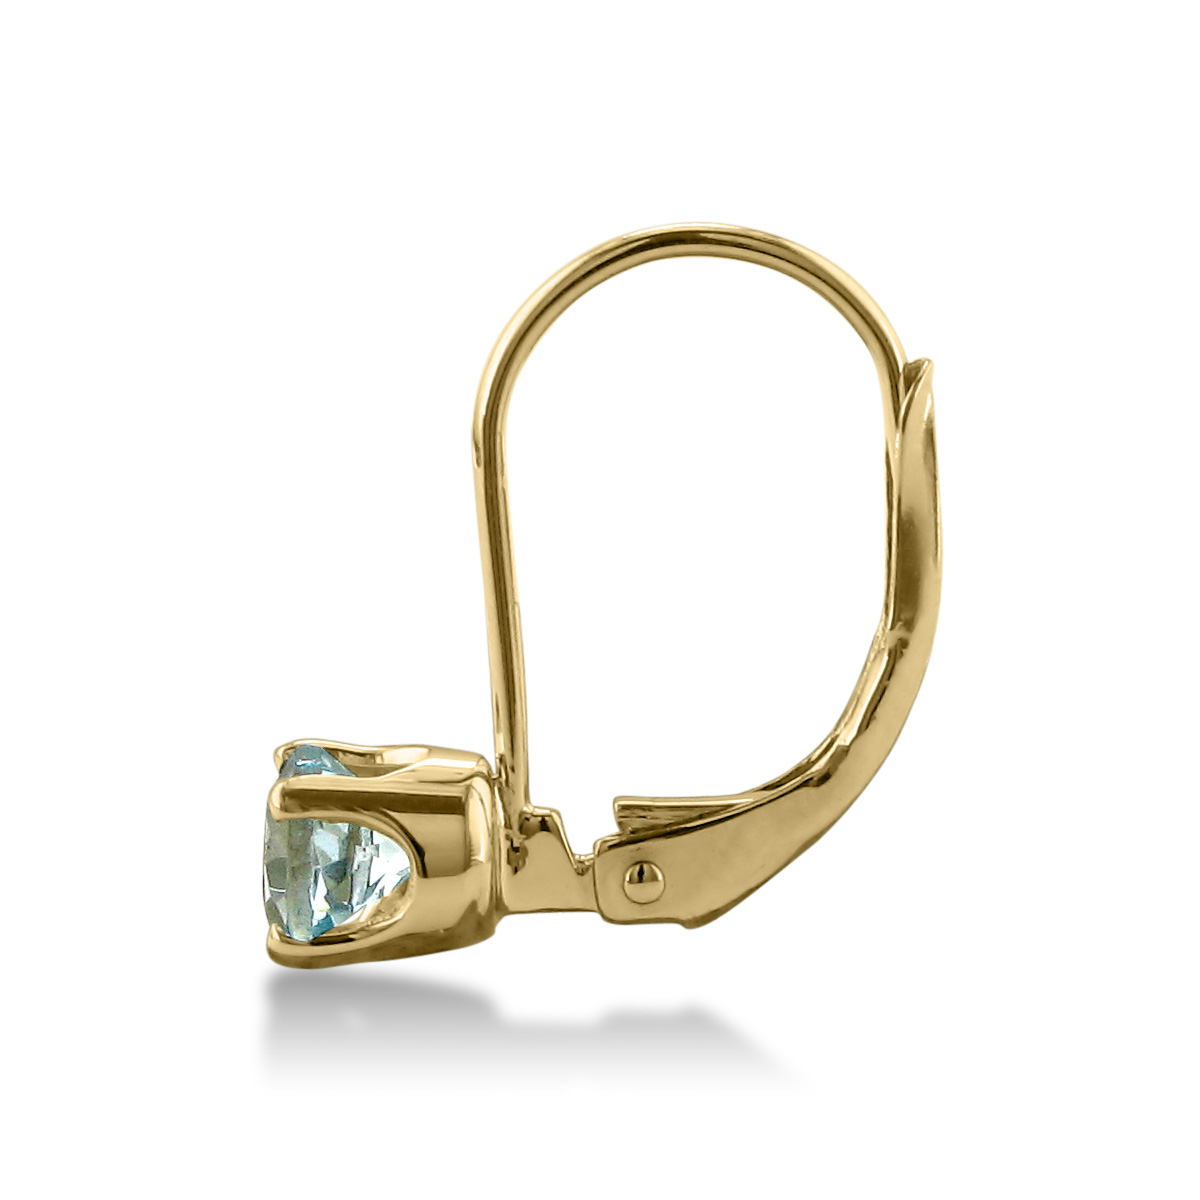 1 2ct Solitaire Aquamarine Leverback Earrings, 14k Yellow Gold